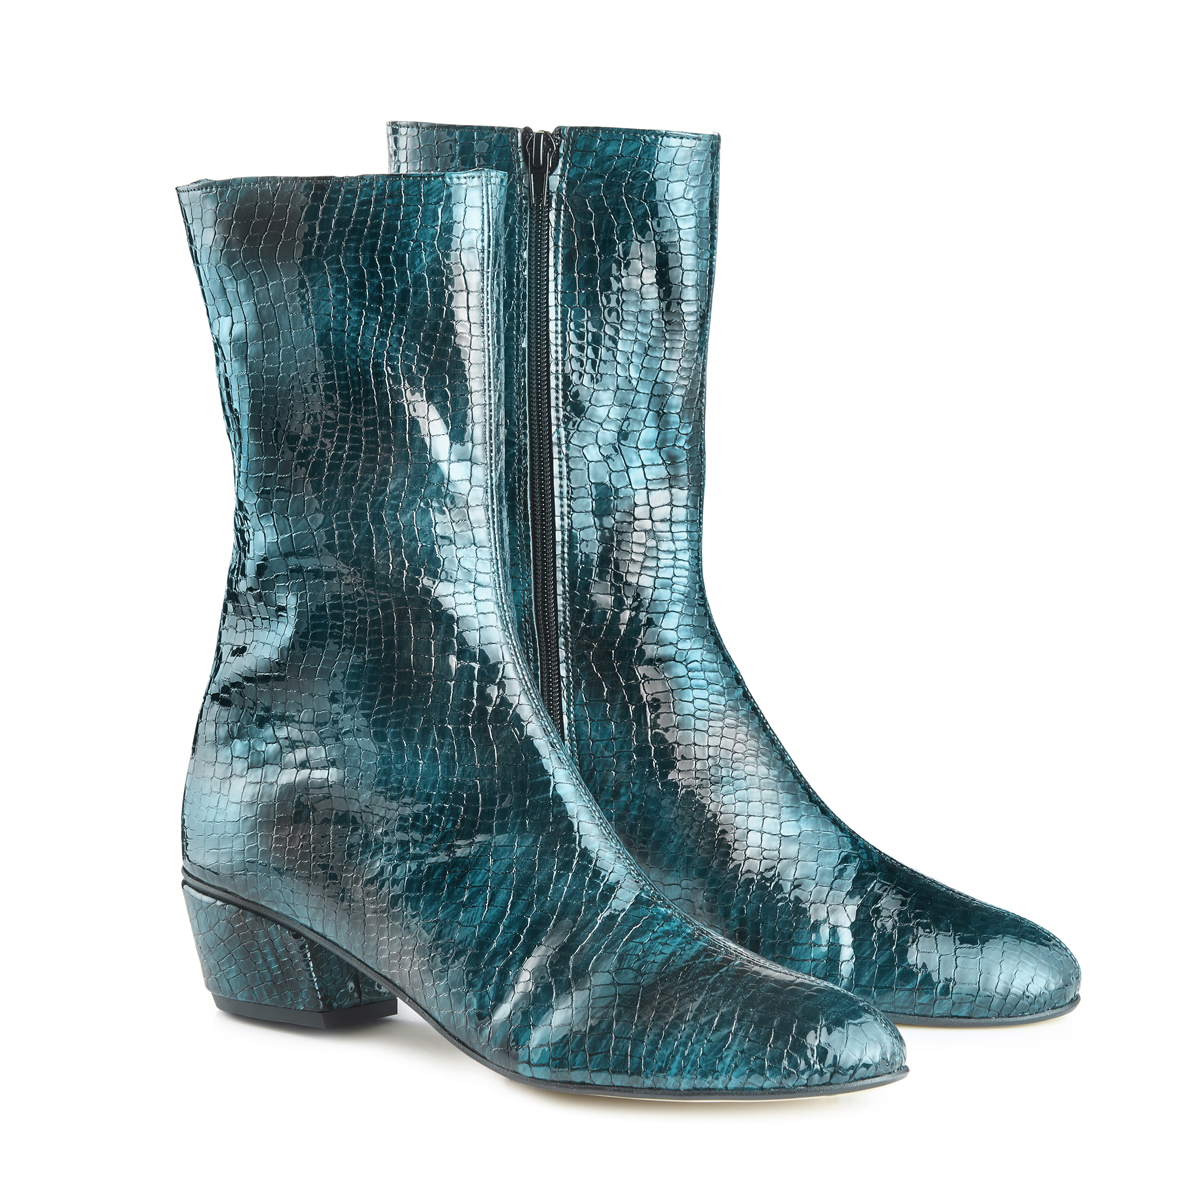 Belle Ankle Boots - Teal Croc